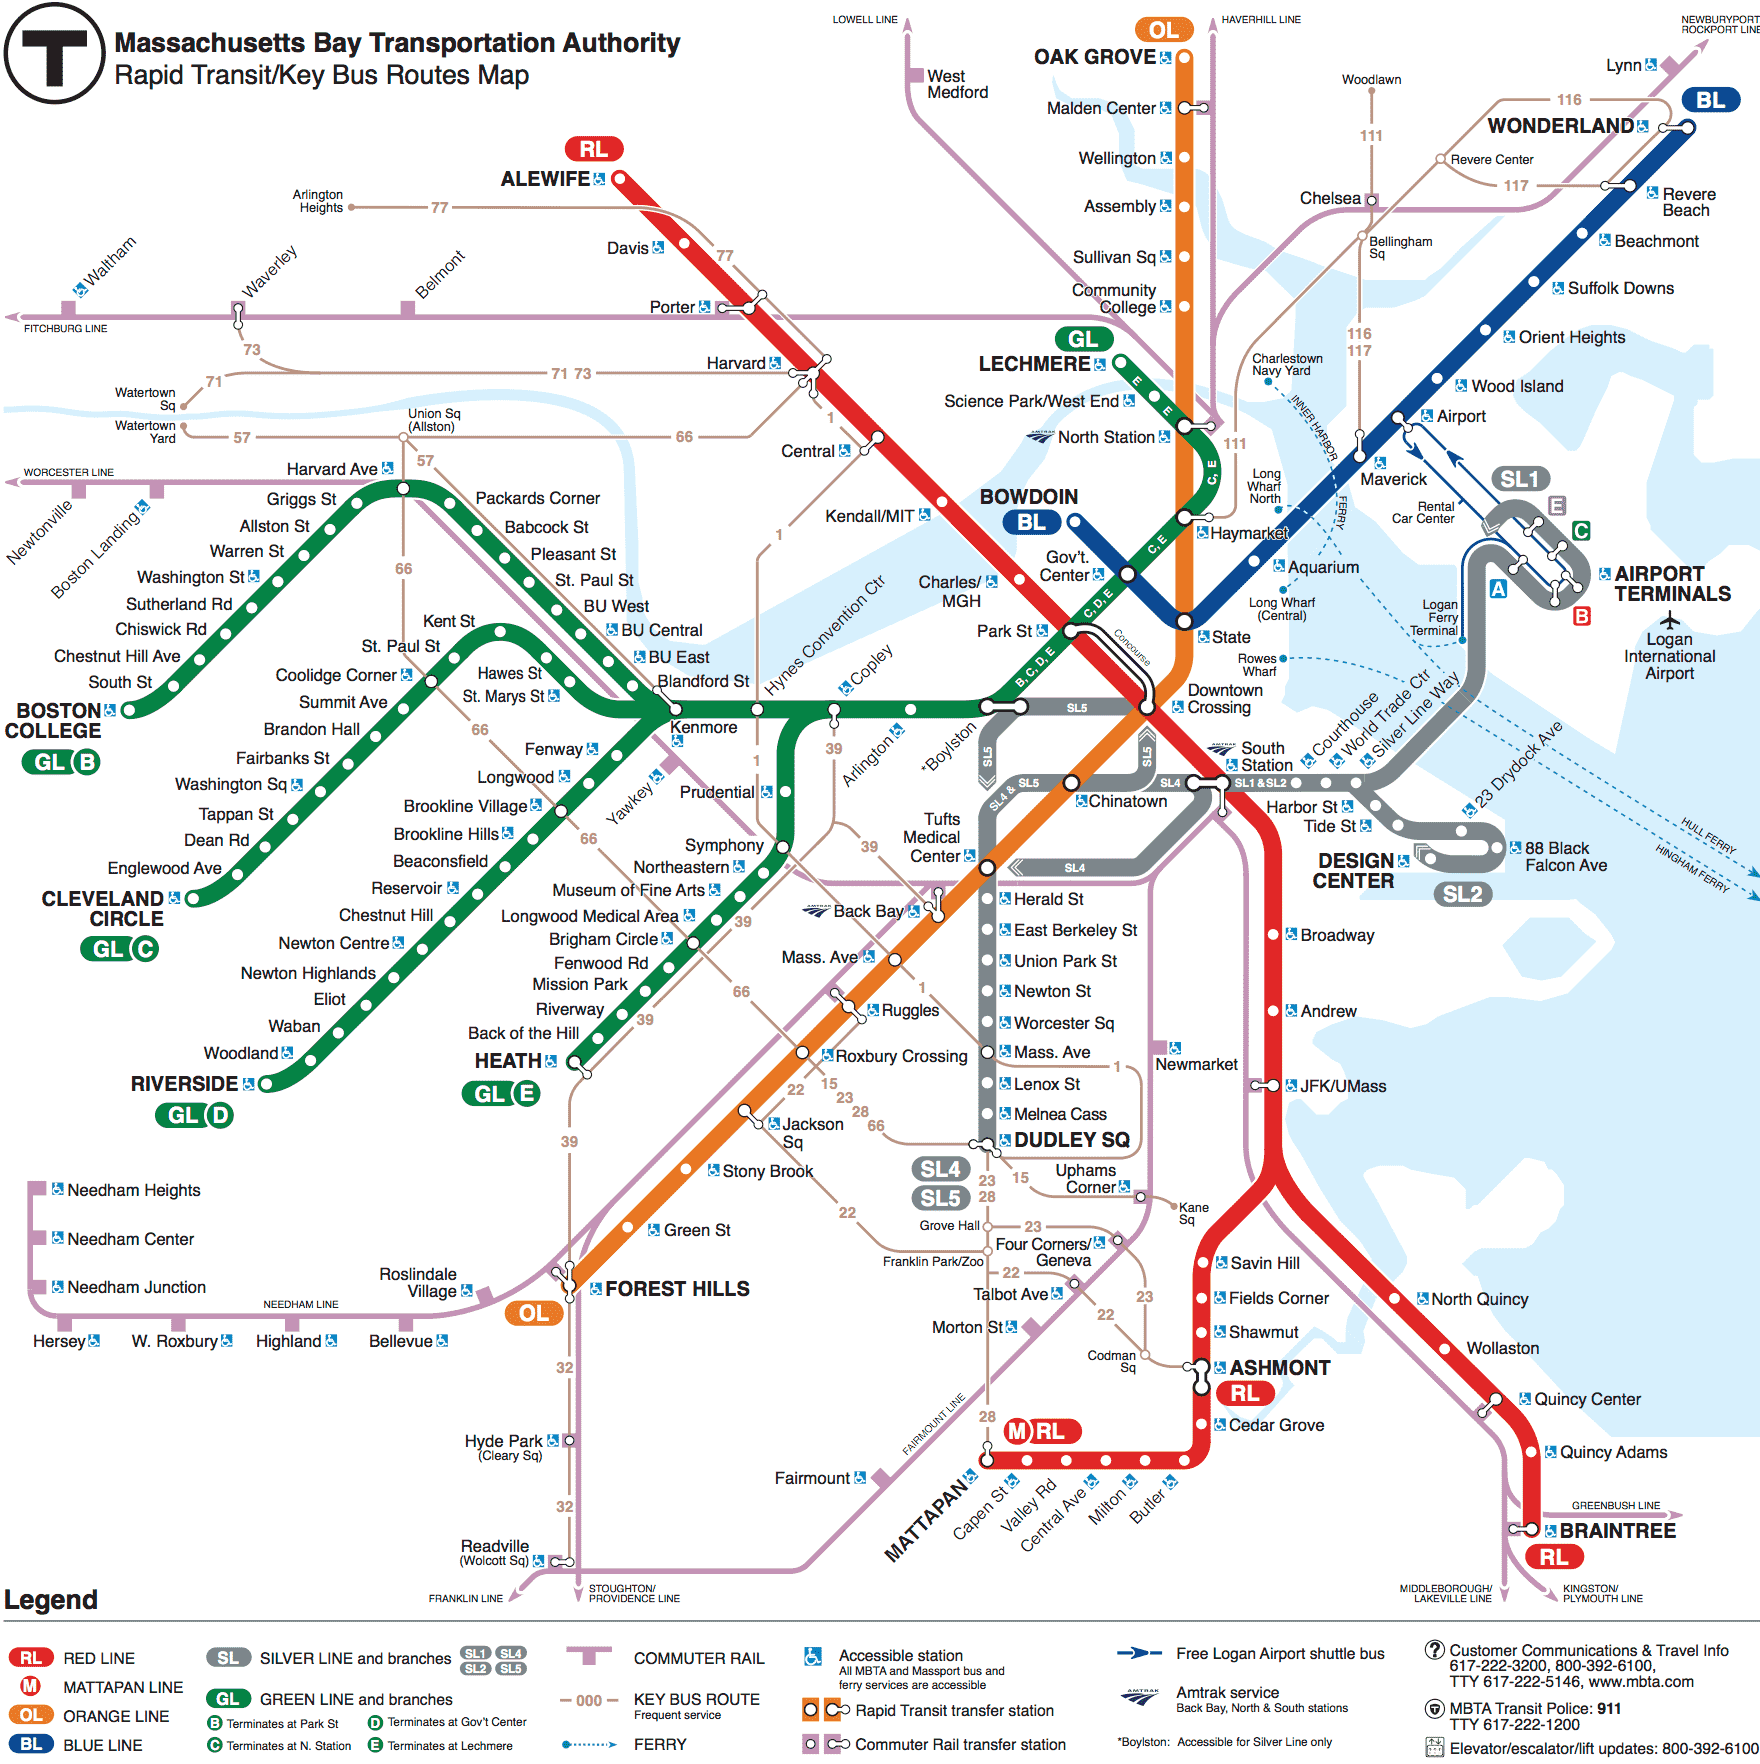 Subway Schedules Maps MBTA Massachusetts Bay - Map massachusetts